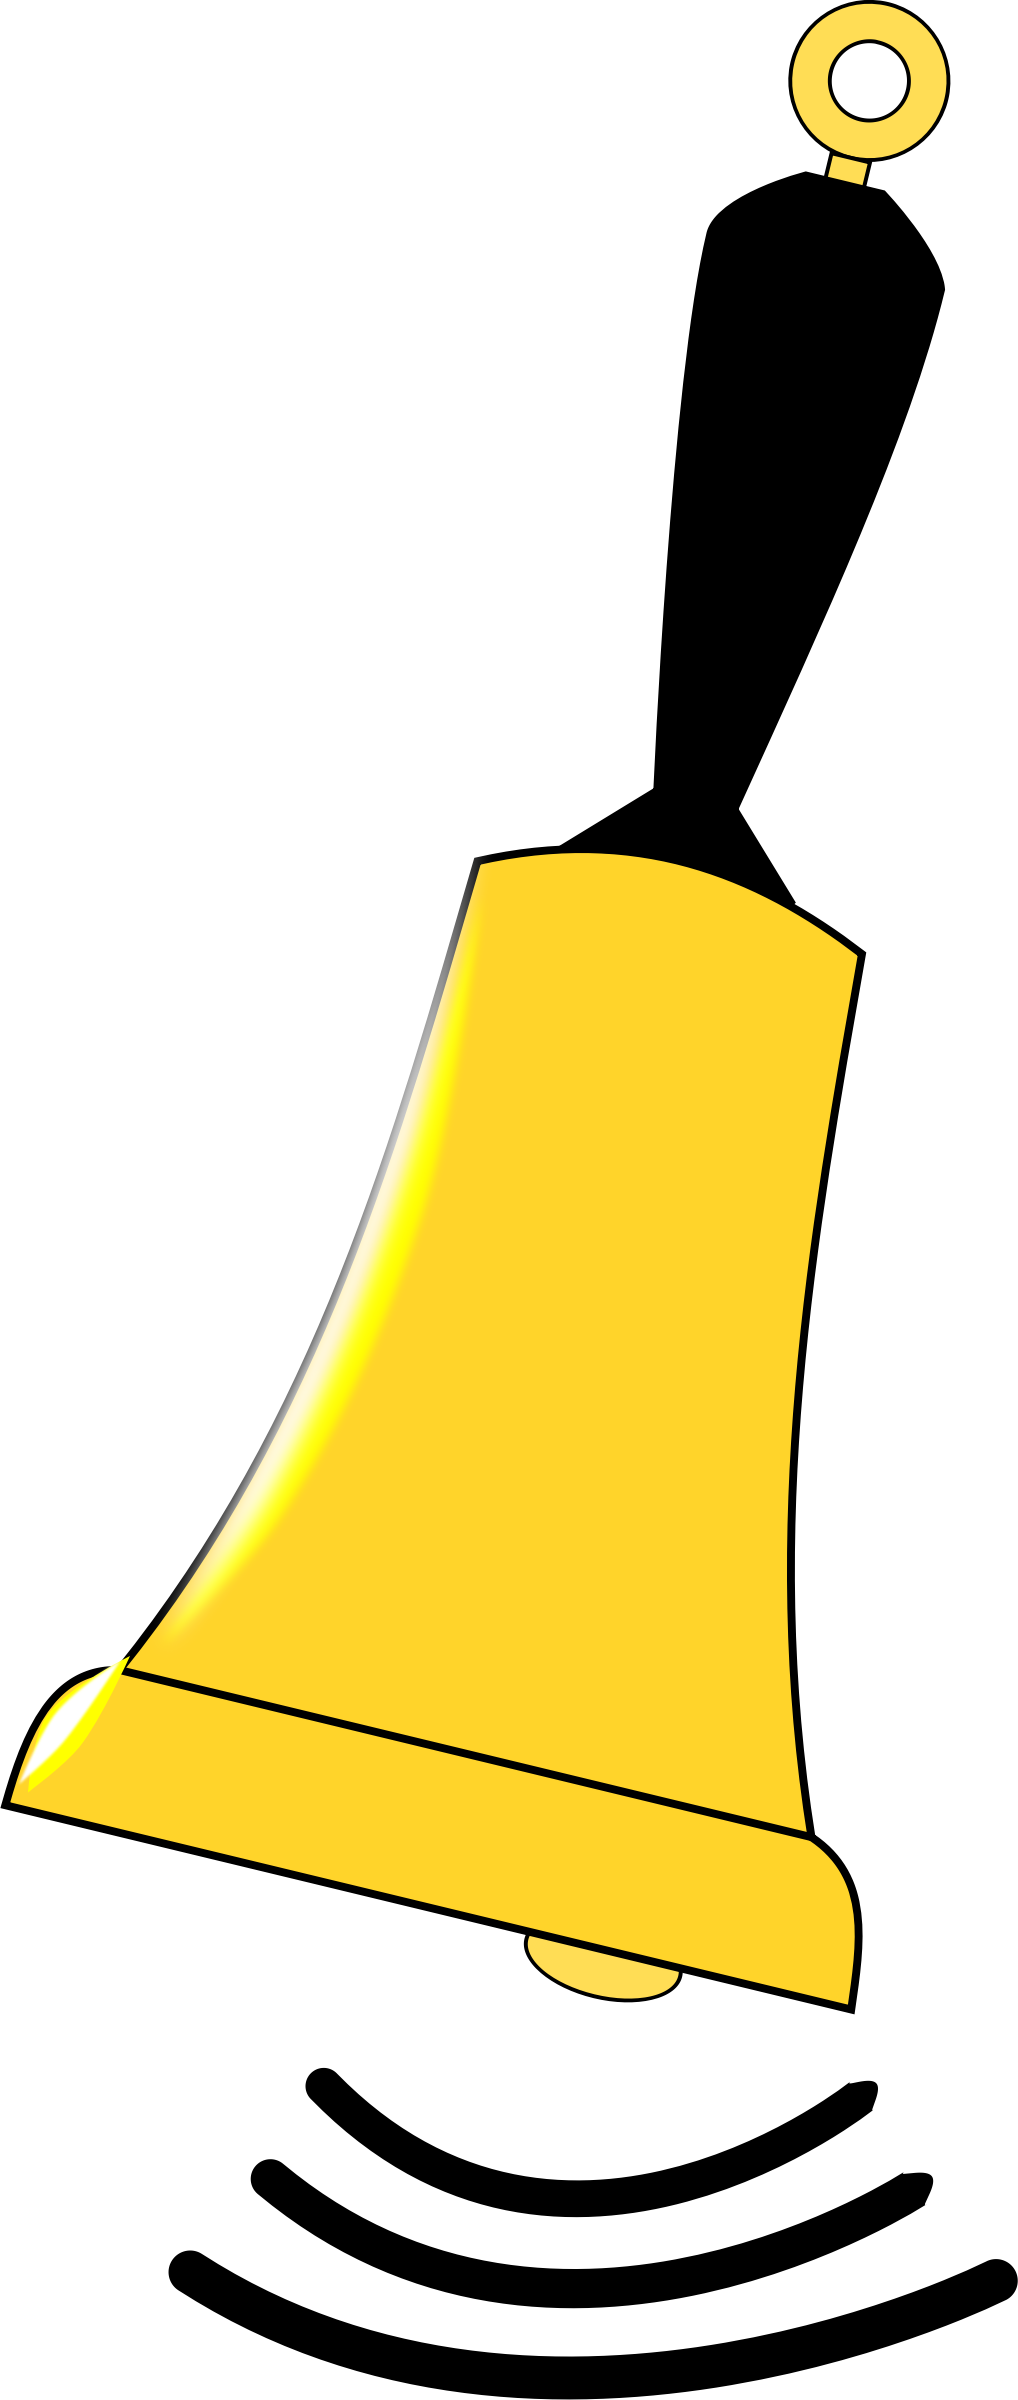 Ringing School Bell Clipart.